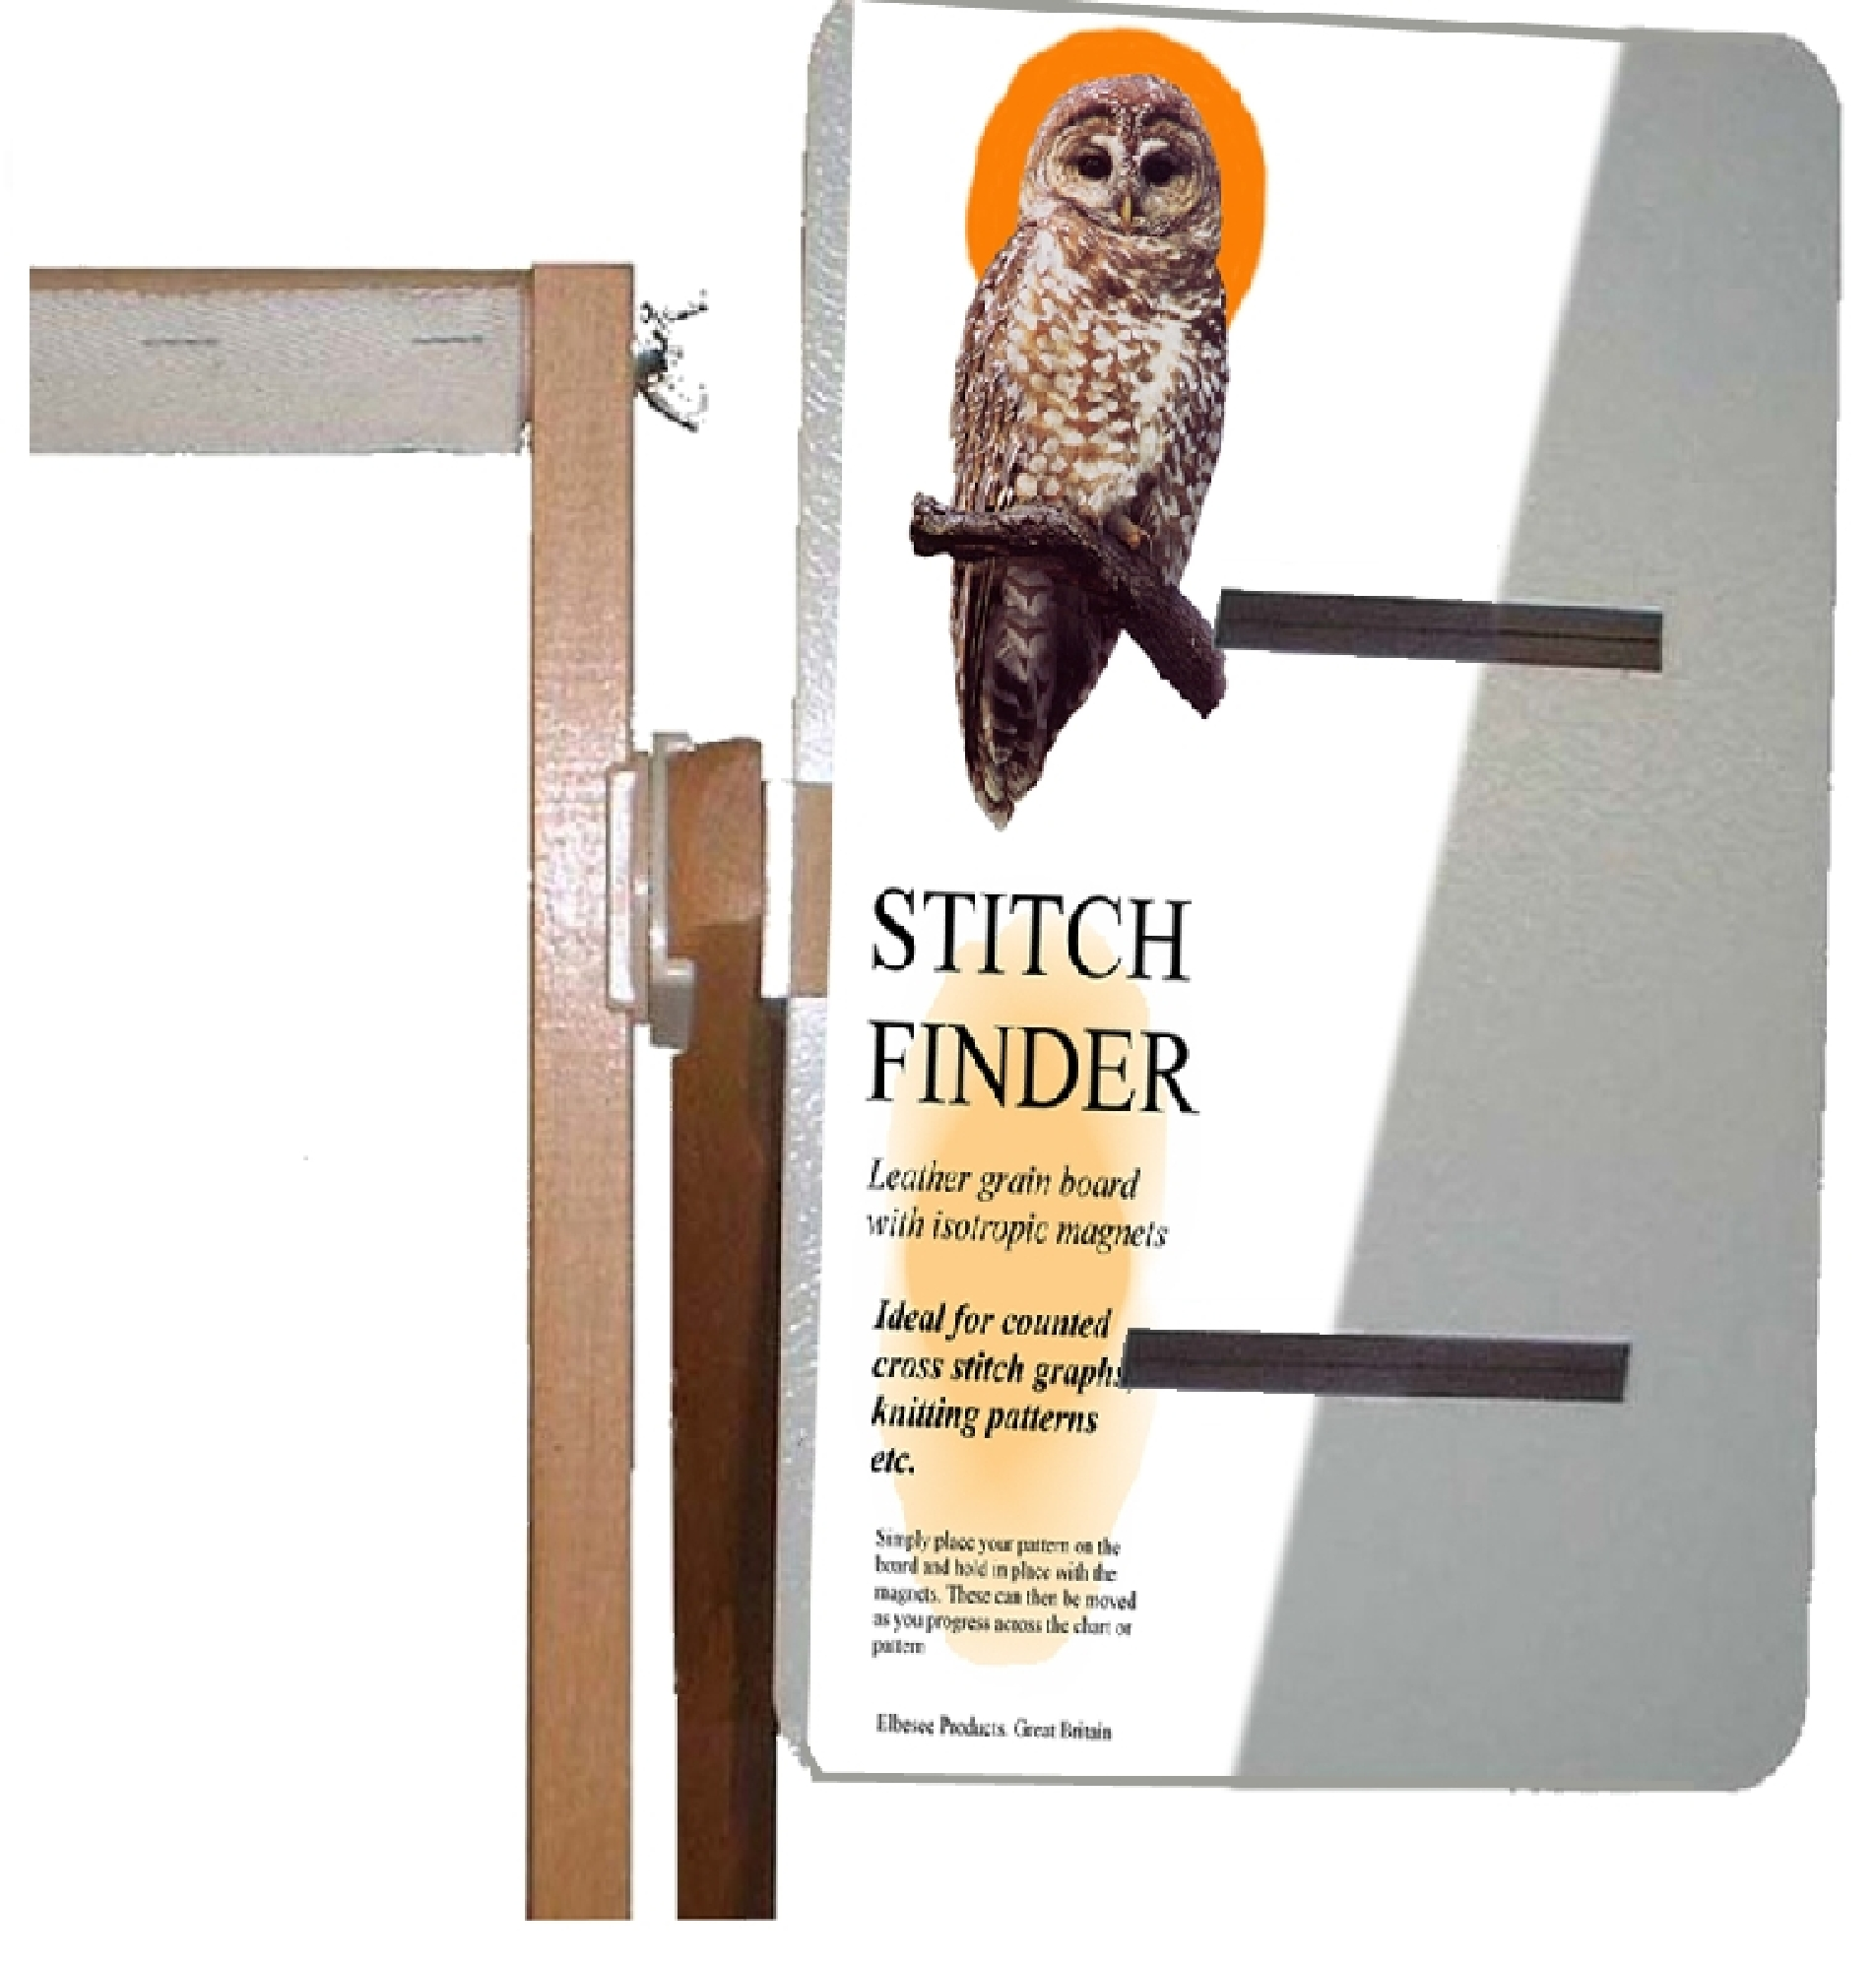 Magnetic Knitting Pattern Holder : Magnetic Stitch Finder Board 28x20cm (11x8in) for Cross Stitch & Knit...